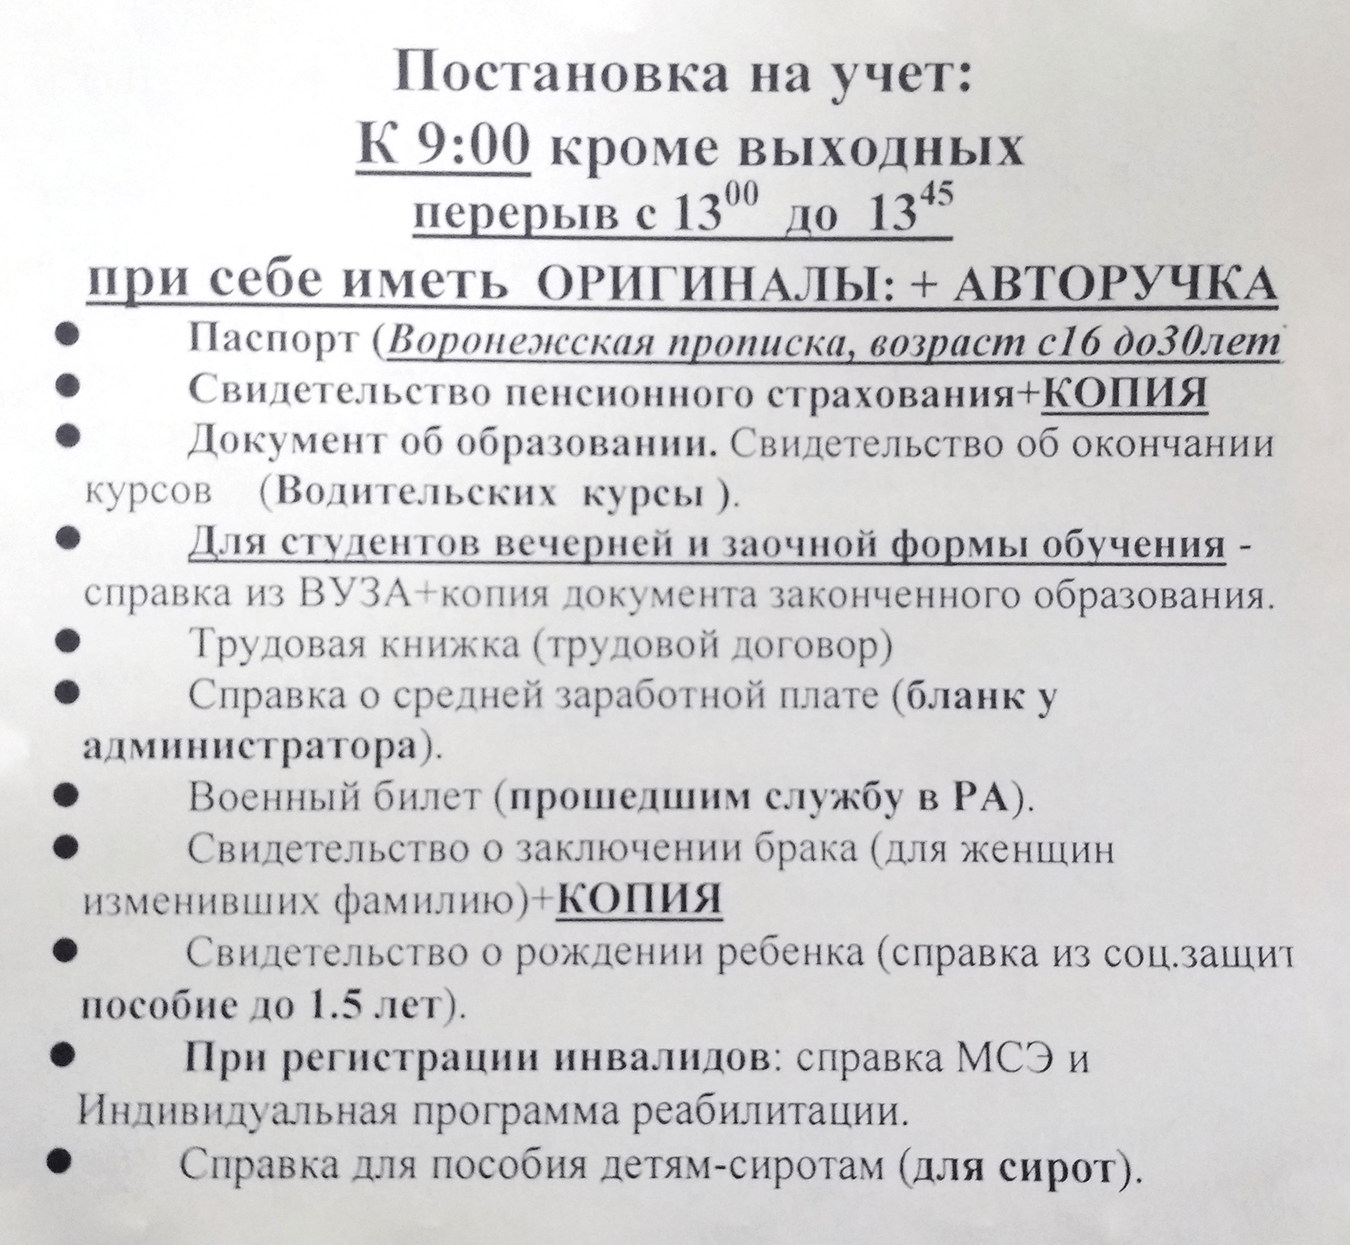 What you need to take with you when you go to Voronezh CZN. This list is issued in the same place, but you can specify in advance by phone or in law, what documents are needed for labor exchange